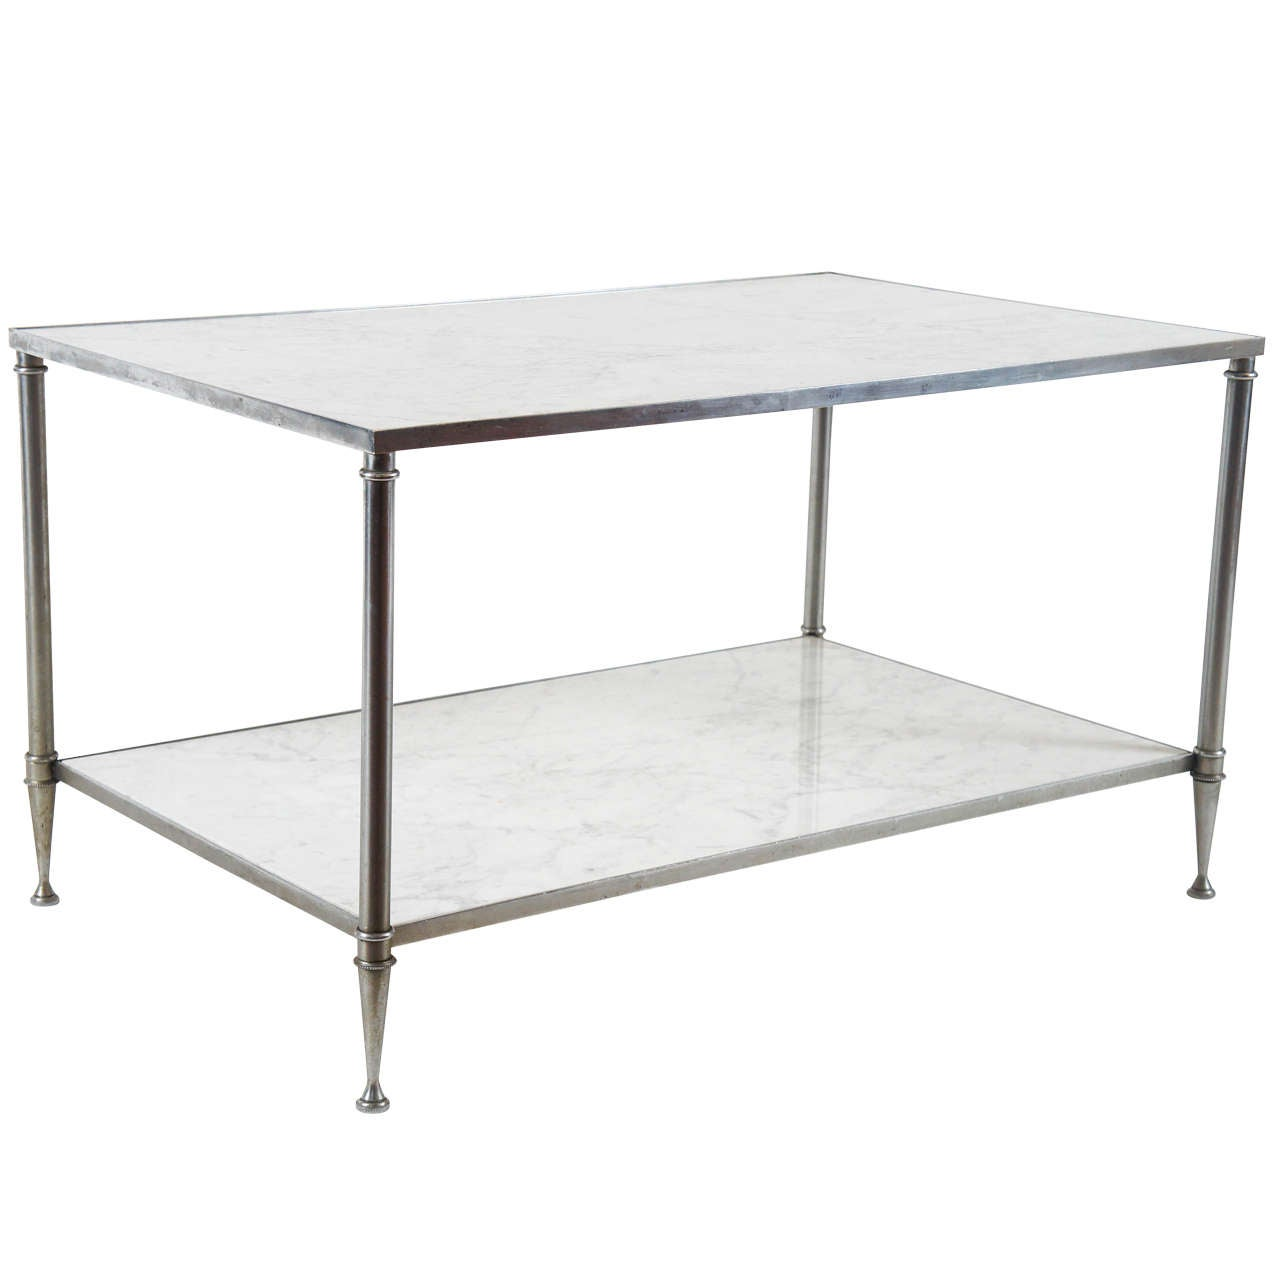 Two Tier Carrara Marble And Steel Coffee Table For Sale At 1stdibs